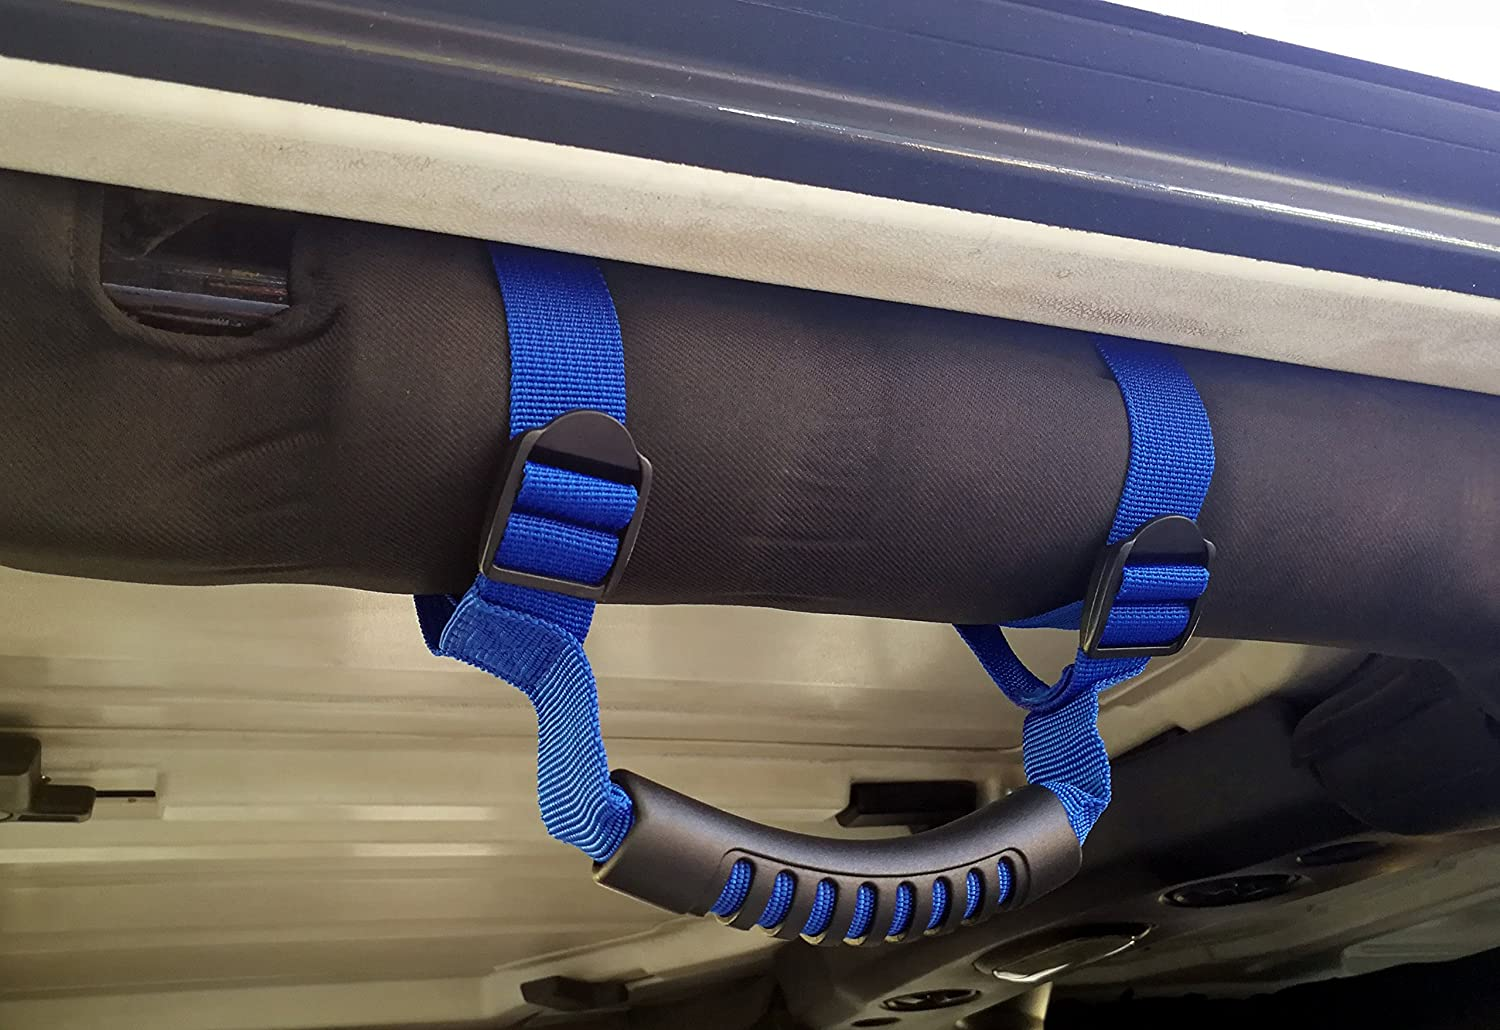 E-cowlboy Blue 4 X Grab Handles Grip Handle for Jeep Wrangler Yj Tj Jk JKU Sports Sahara Freedom Rubicon X /& Unlimited X 2//4 Door 1995-2016 Blue